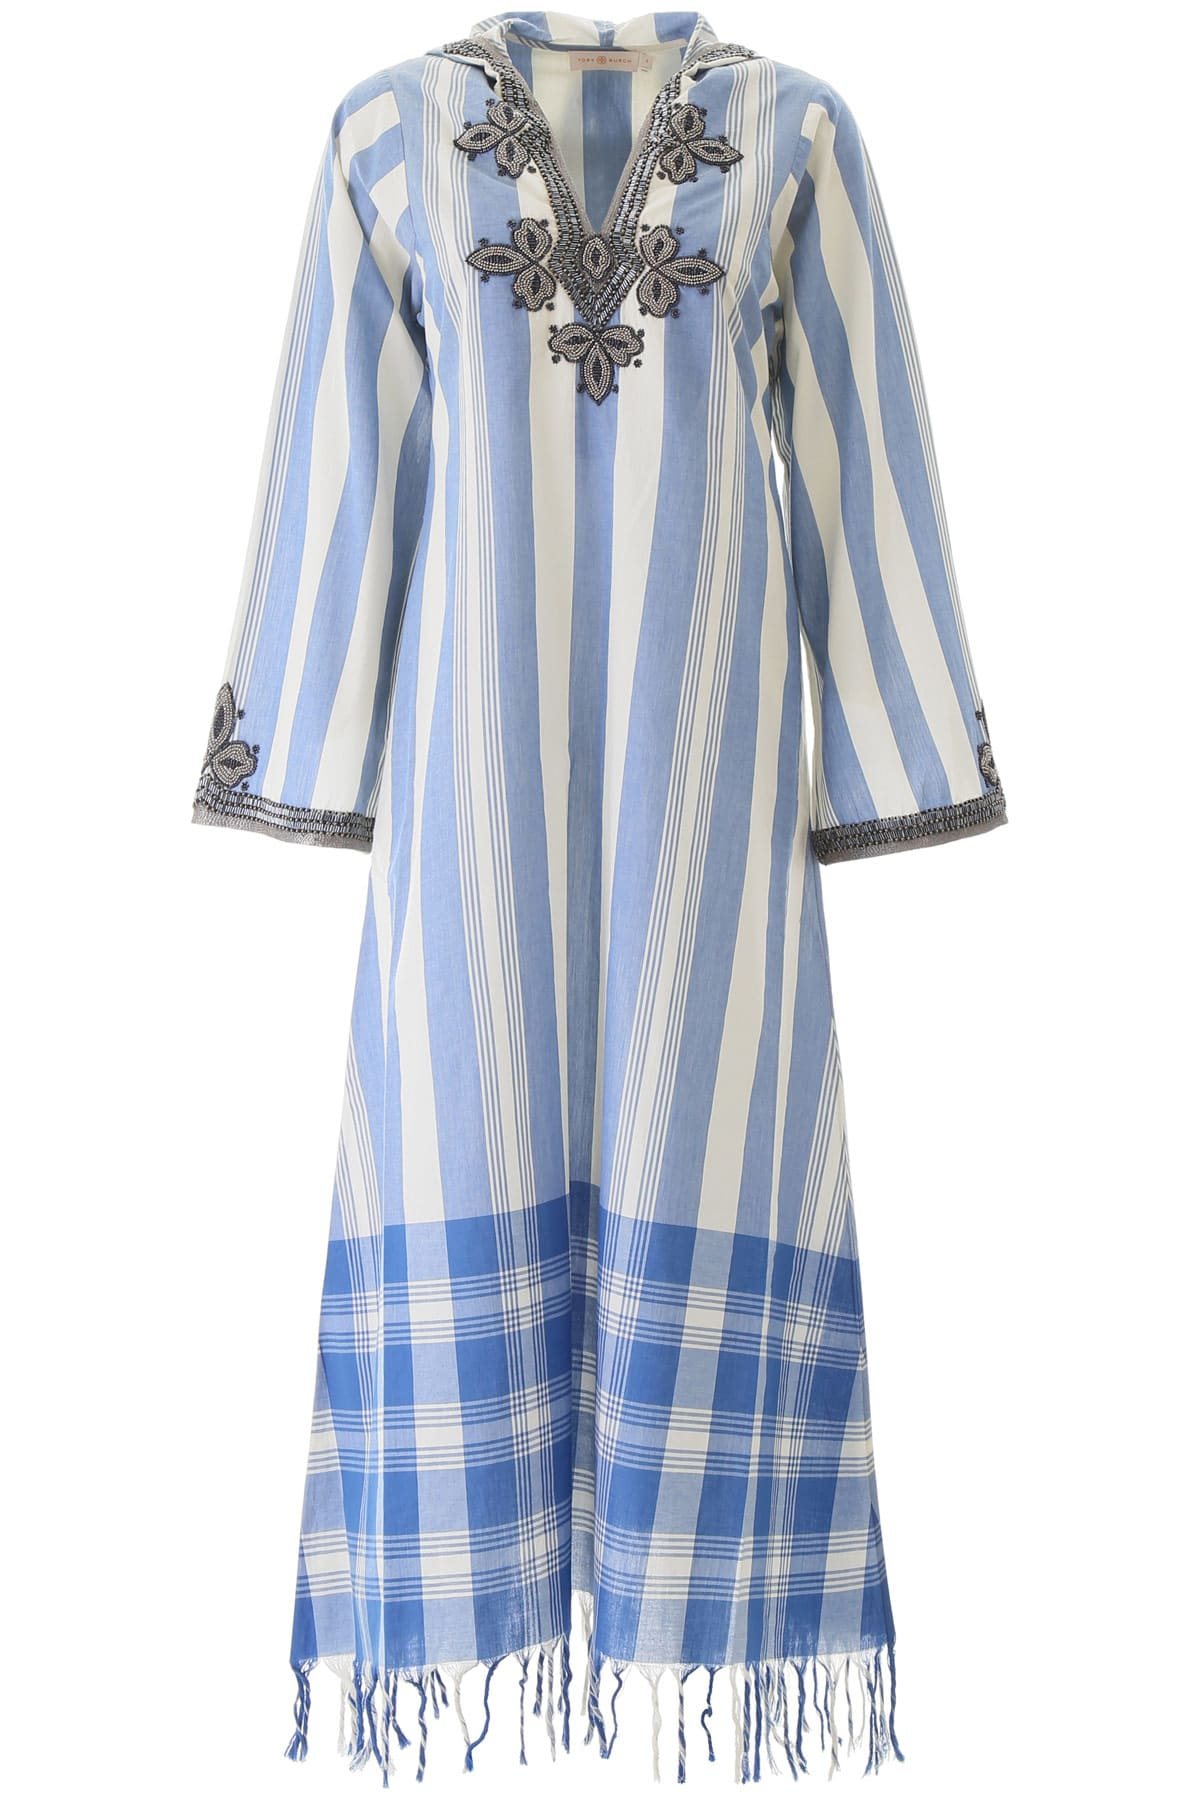 Buy Tory Burch Embroidered Kaftan Dress online, shop Tory Burch with free shipping